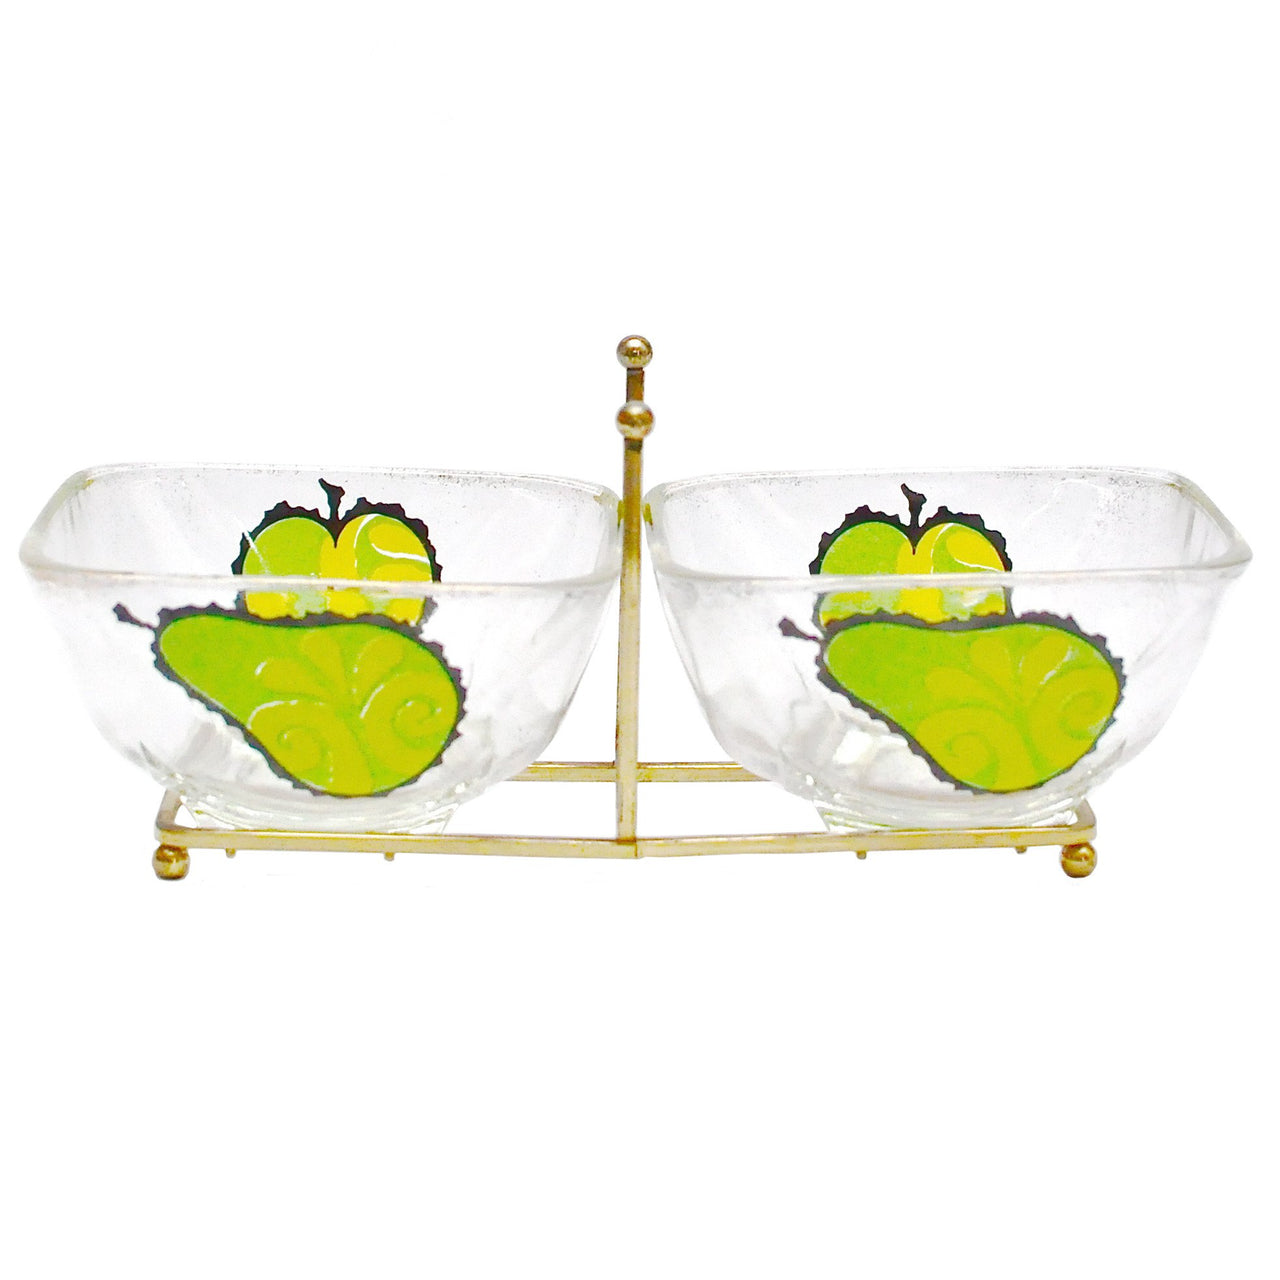 G. Briard Apple & Pear Bowl Caddy | The Hour Shop Vintage